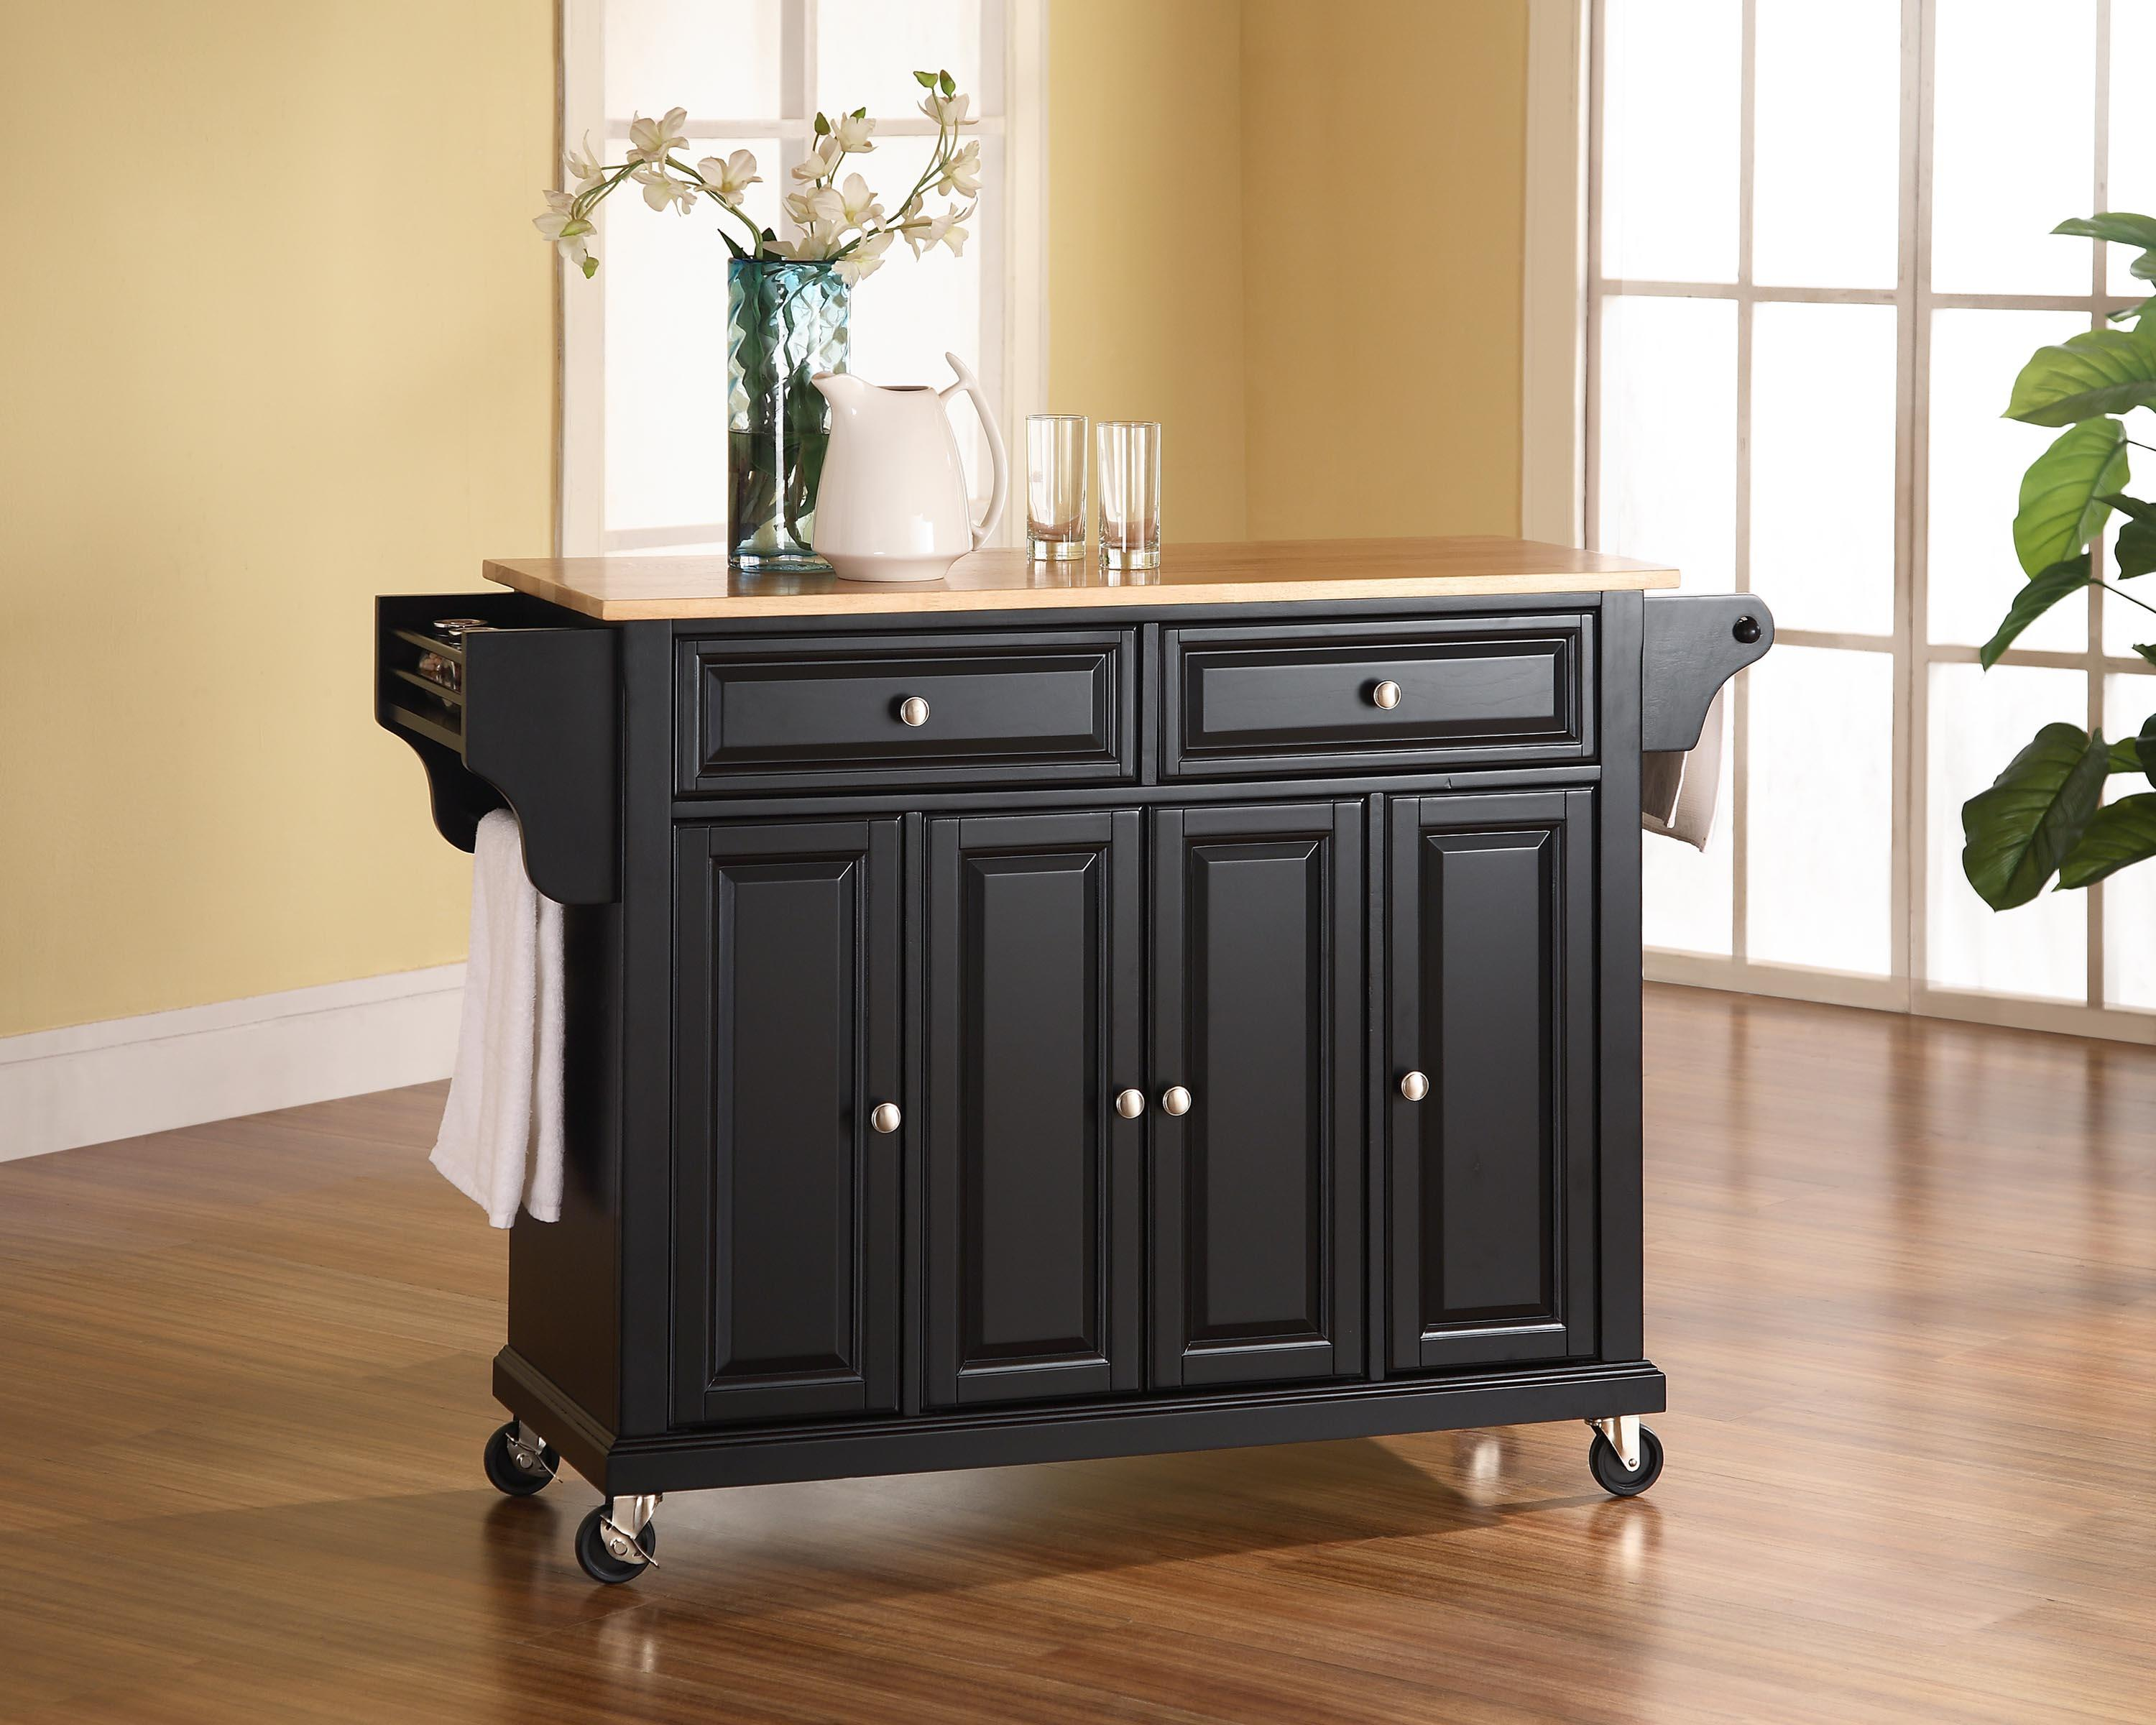 Kitchen Cart/Island - From $369.00 To $460.00